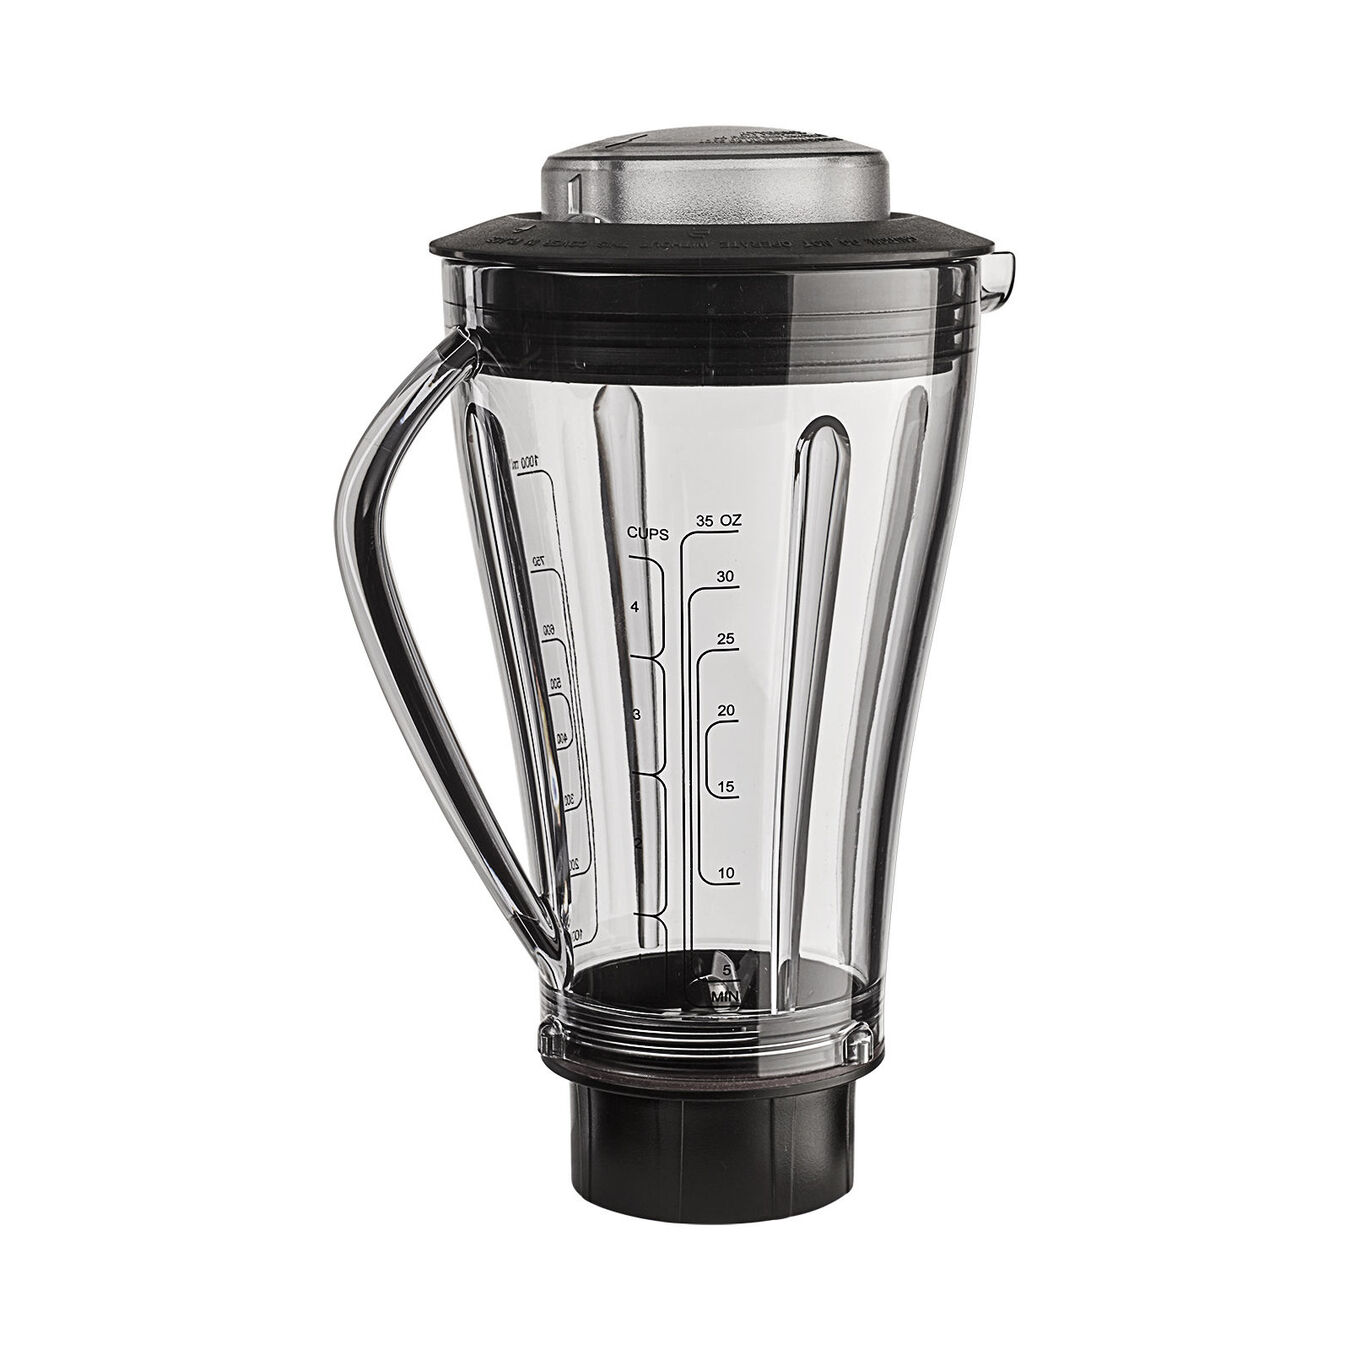 Countertop Blender - Cherry Red,,large 3